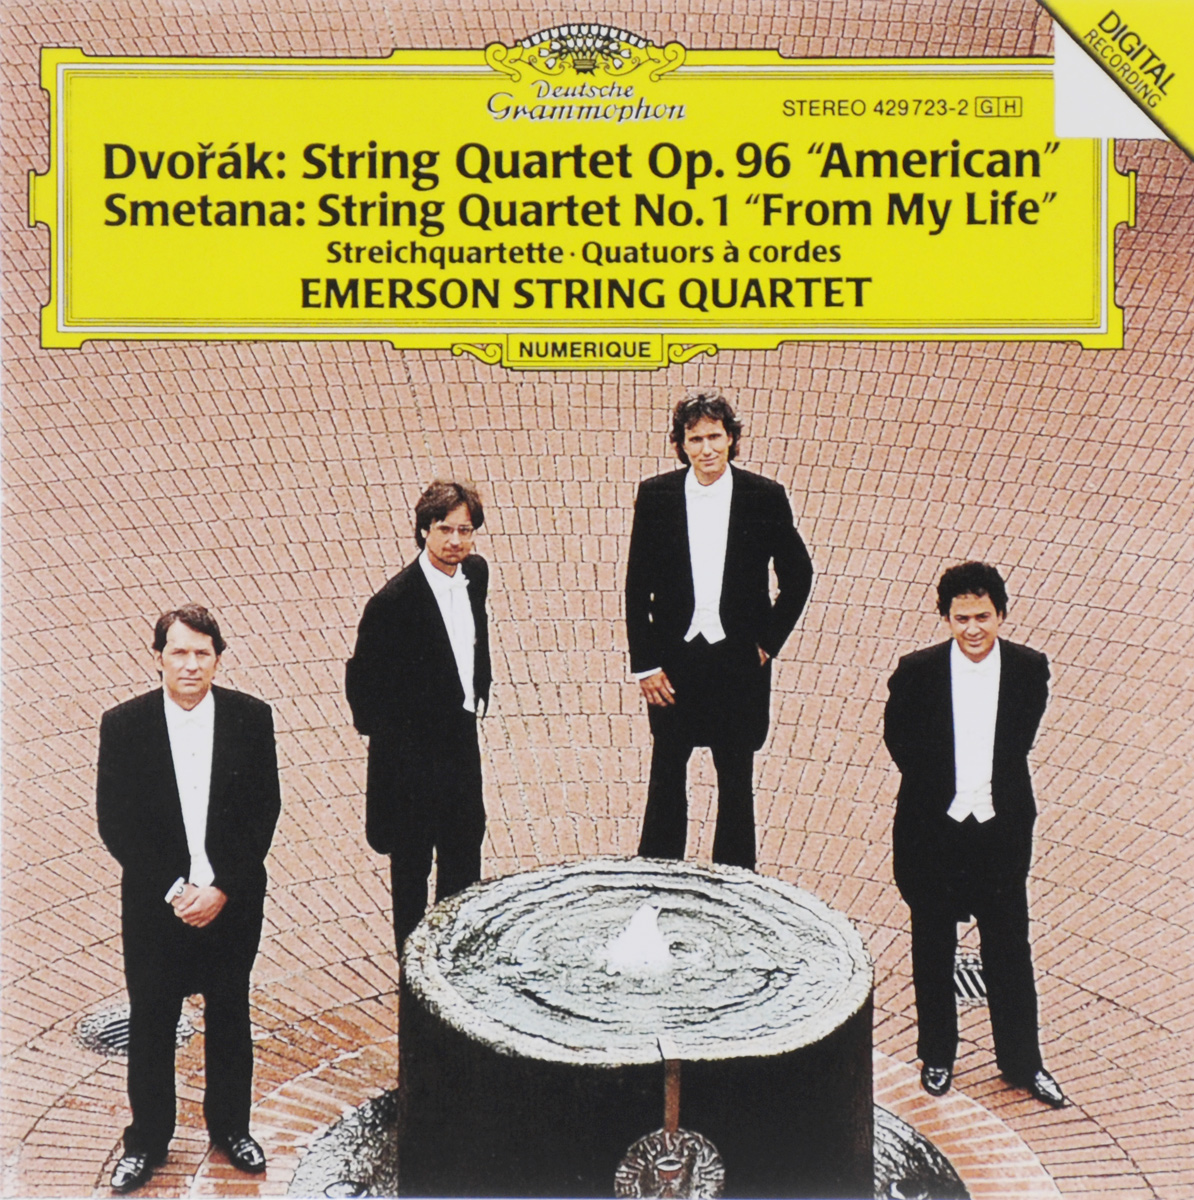 Emerson String Quartet Emerson String Quartet. String Quartet Op. 96 American / String Quartet No. 1 From My Life lumifor lst 60130